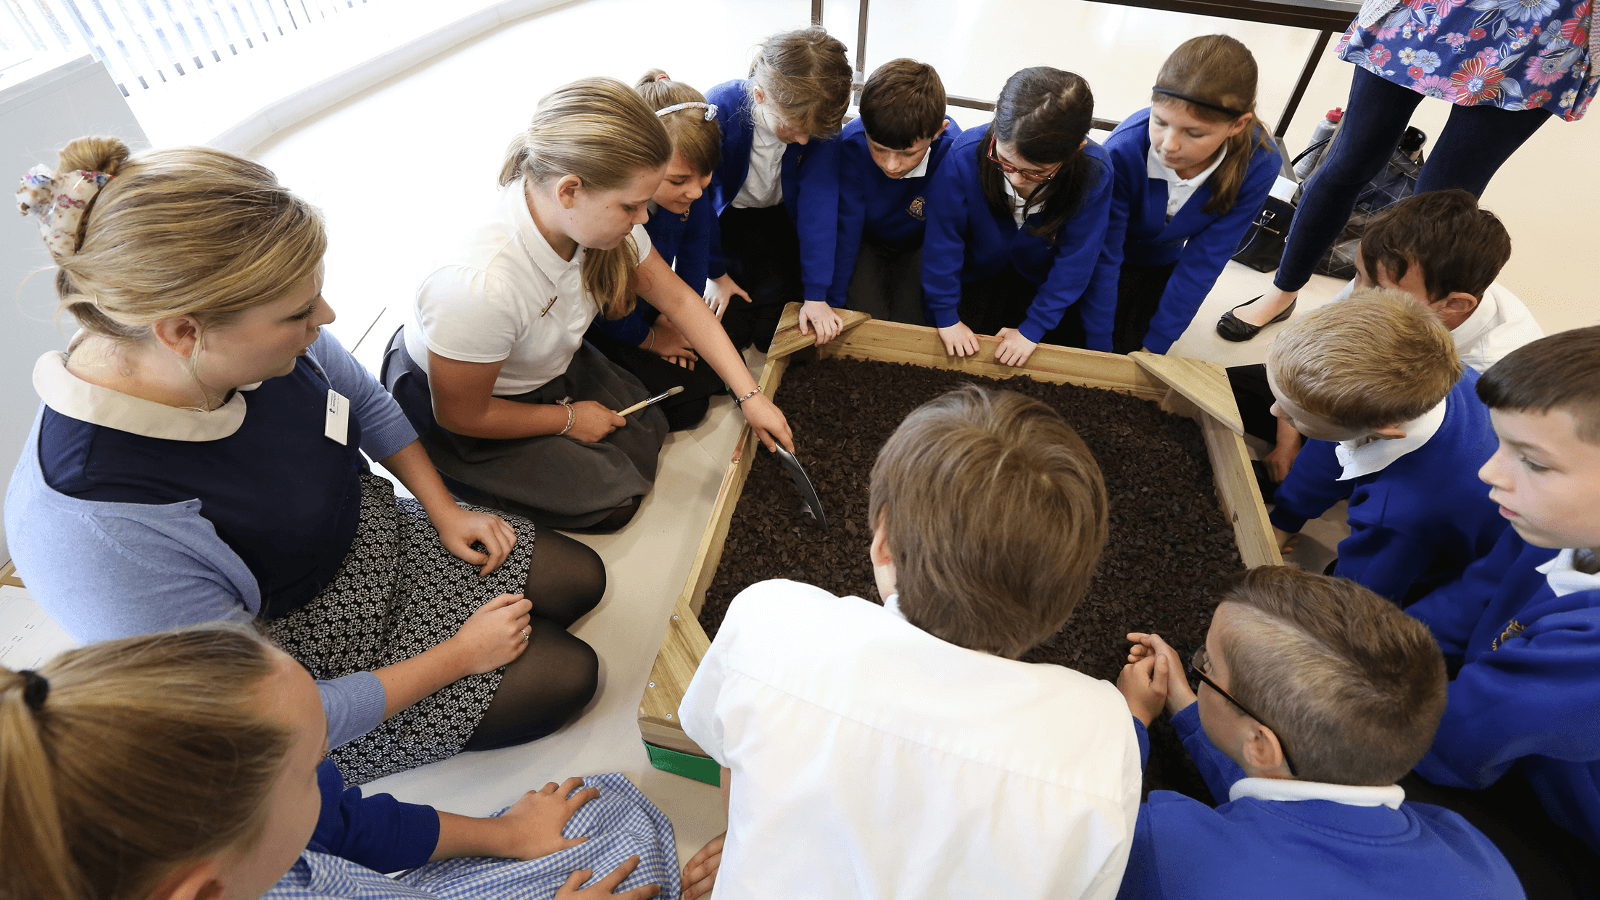 School group enjoying Museum workshop